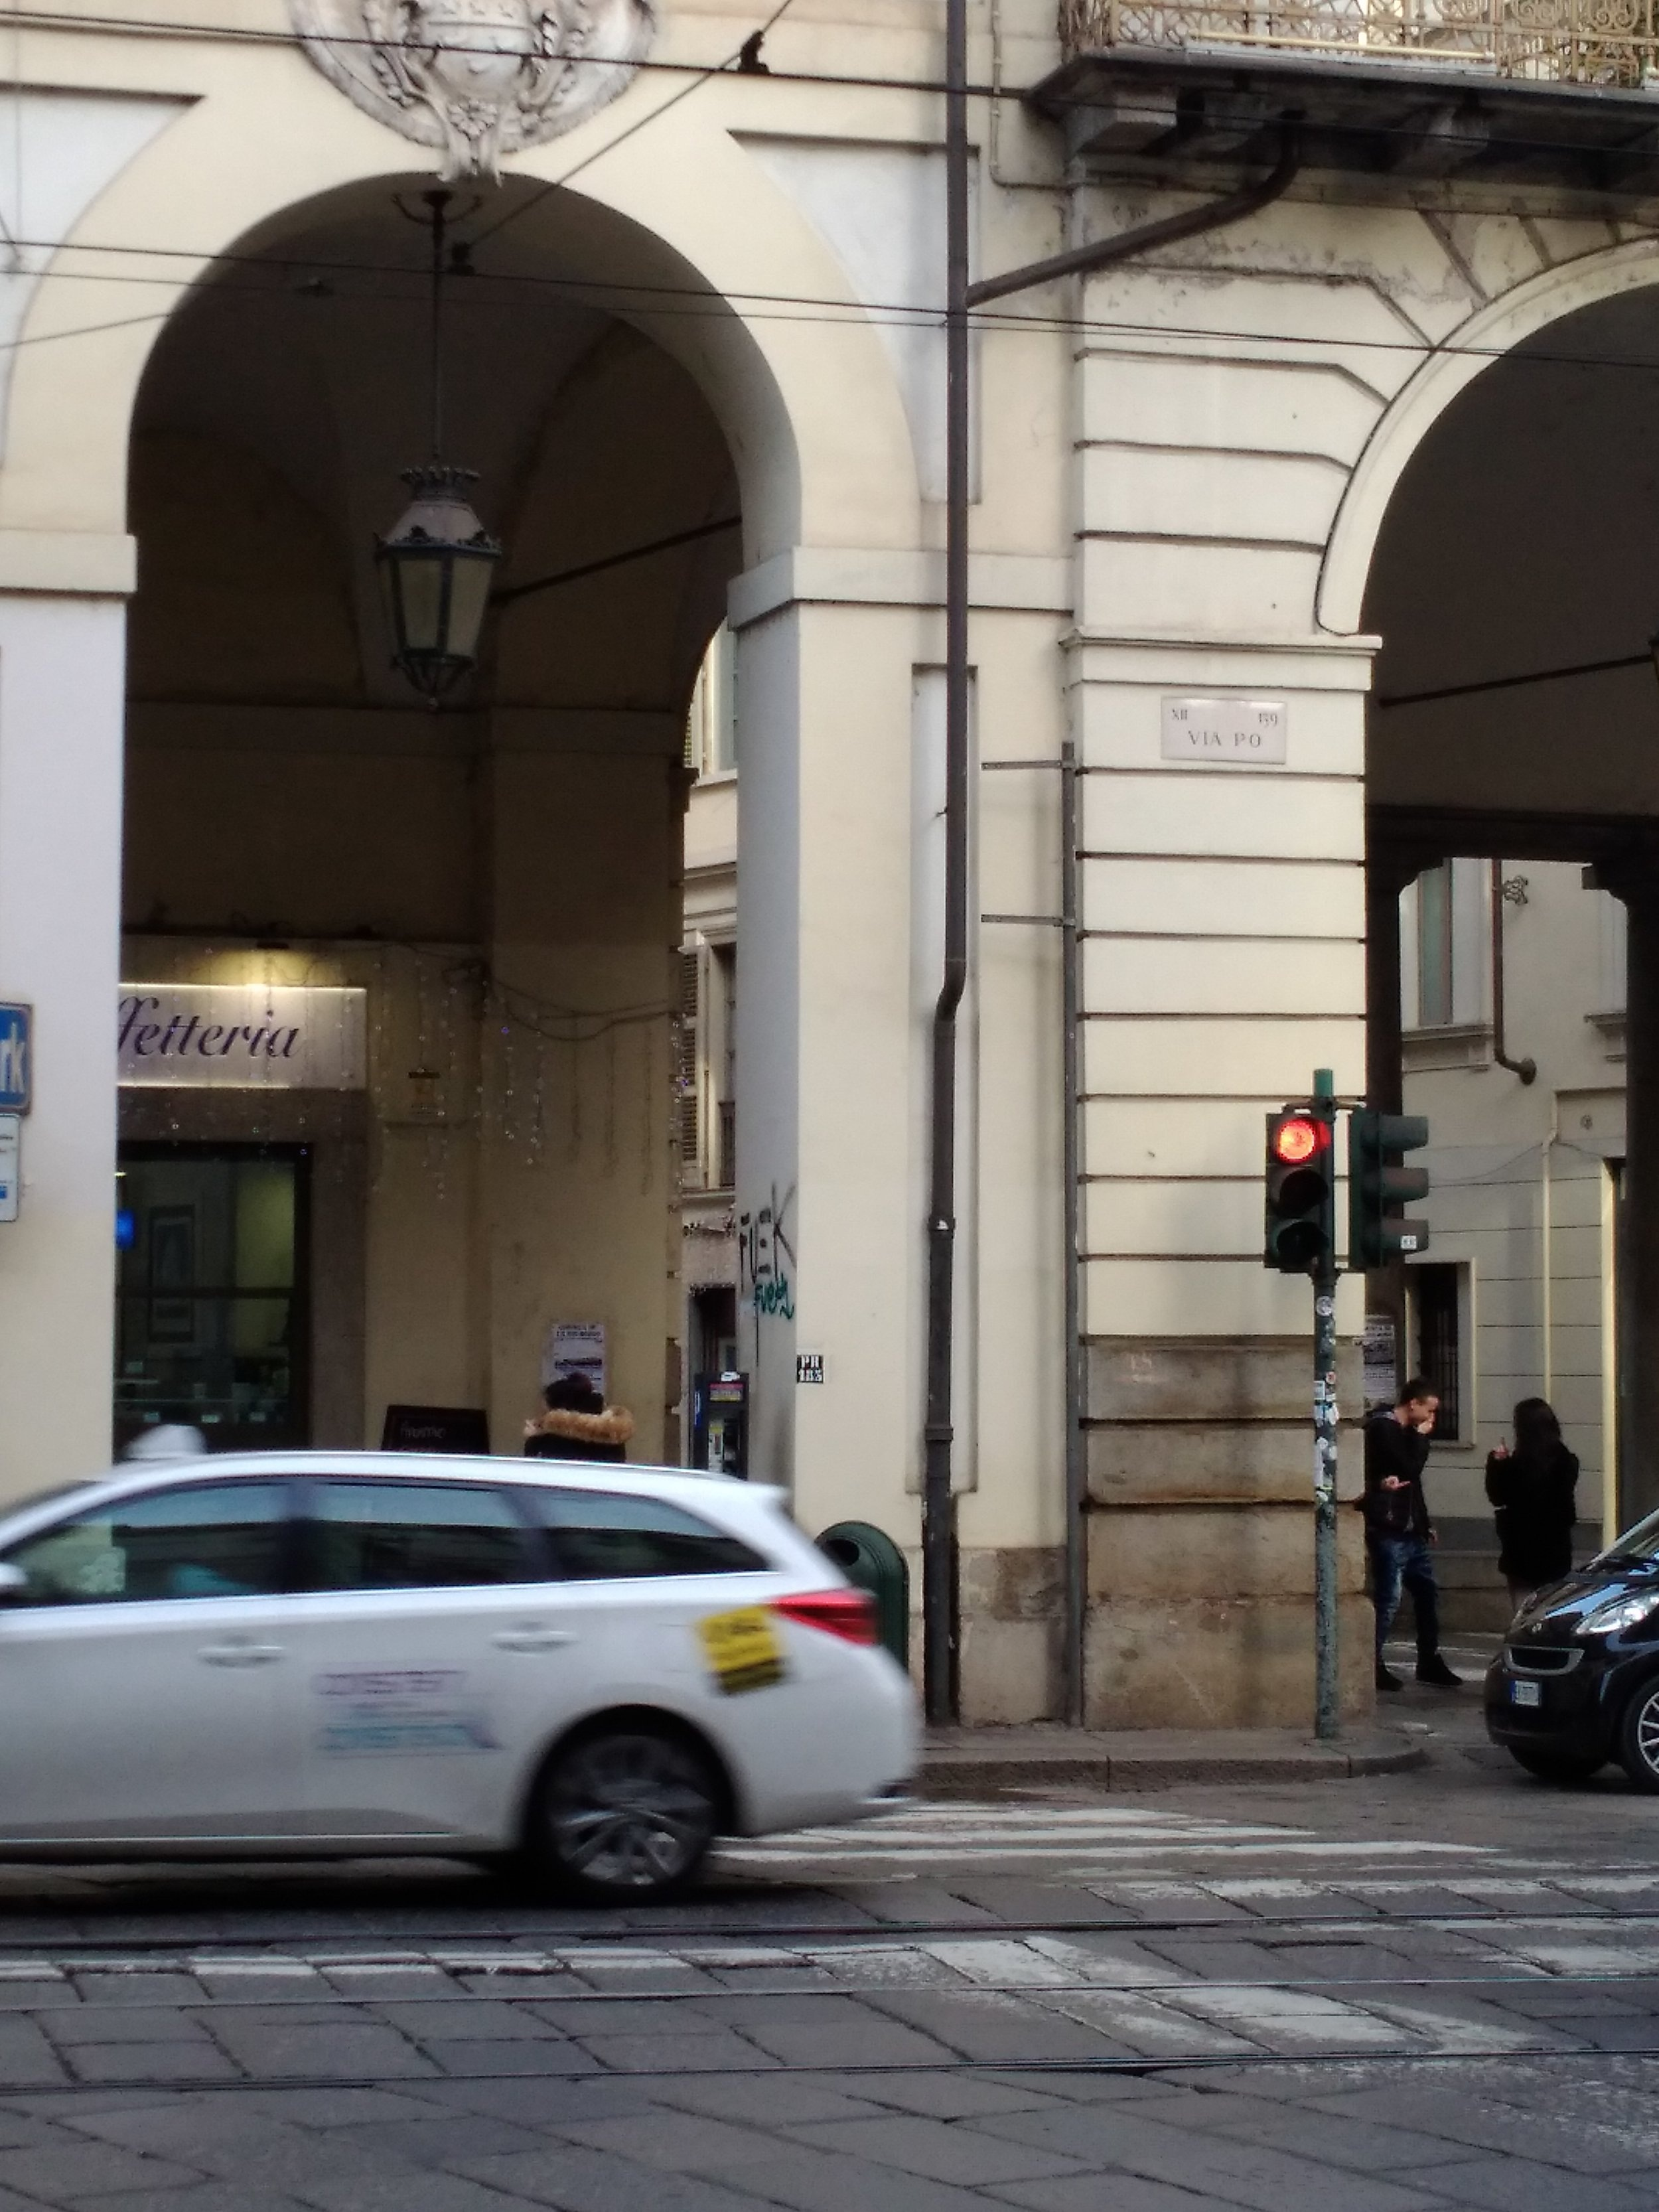 Torino, Italy, December 5th, 2019:  Make Culture, Make Europe , Experiential Learning